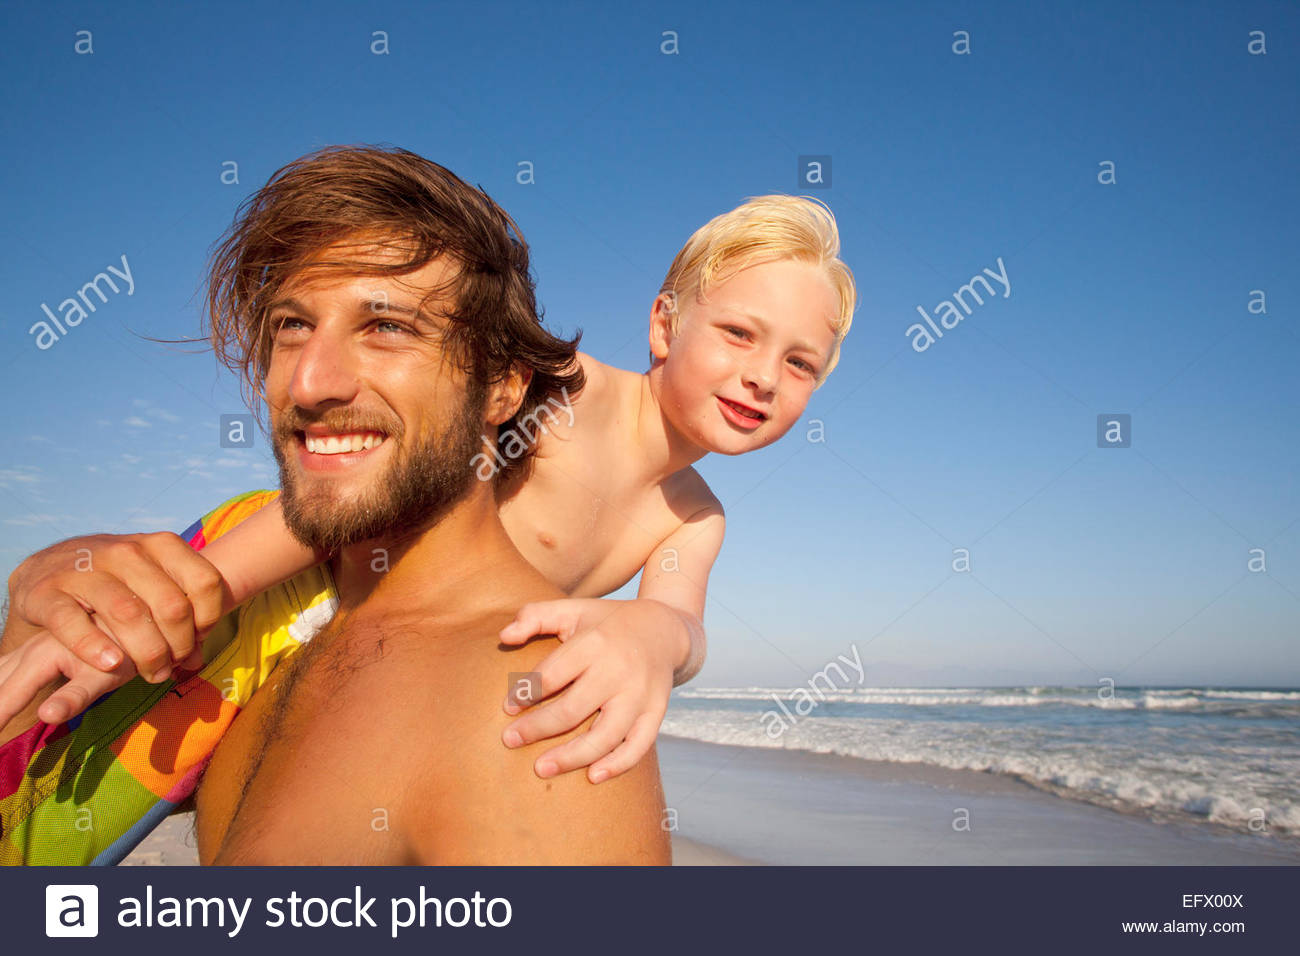 Smiling father, holding son on shoulder, on sunny beach - Stock Image